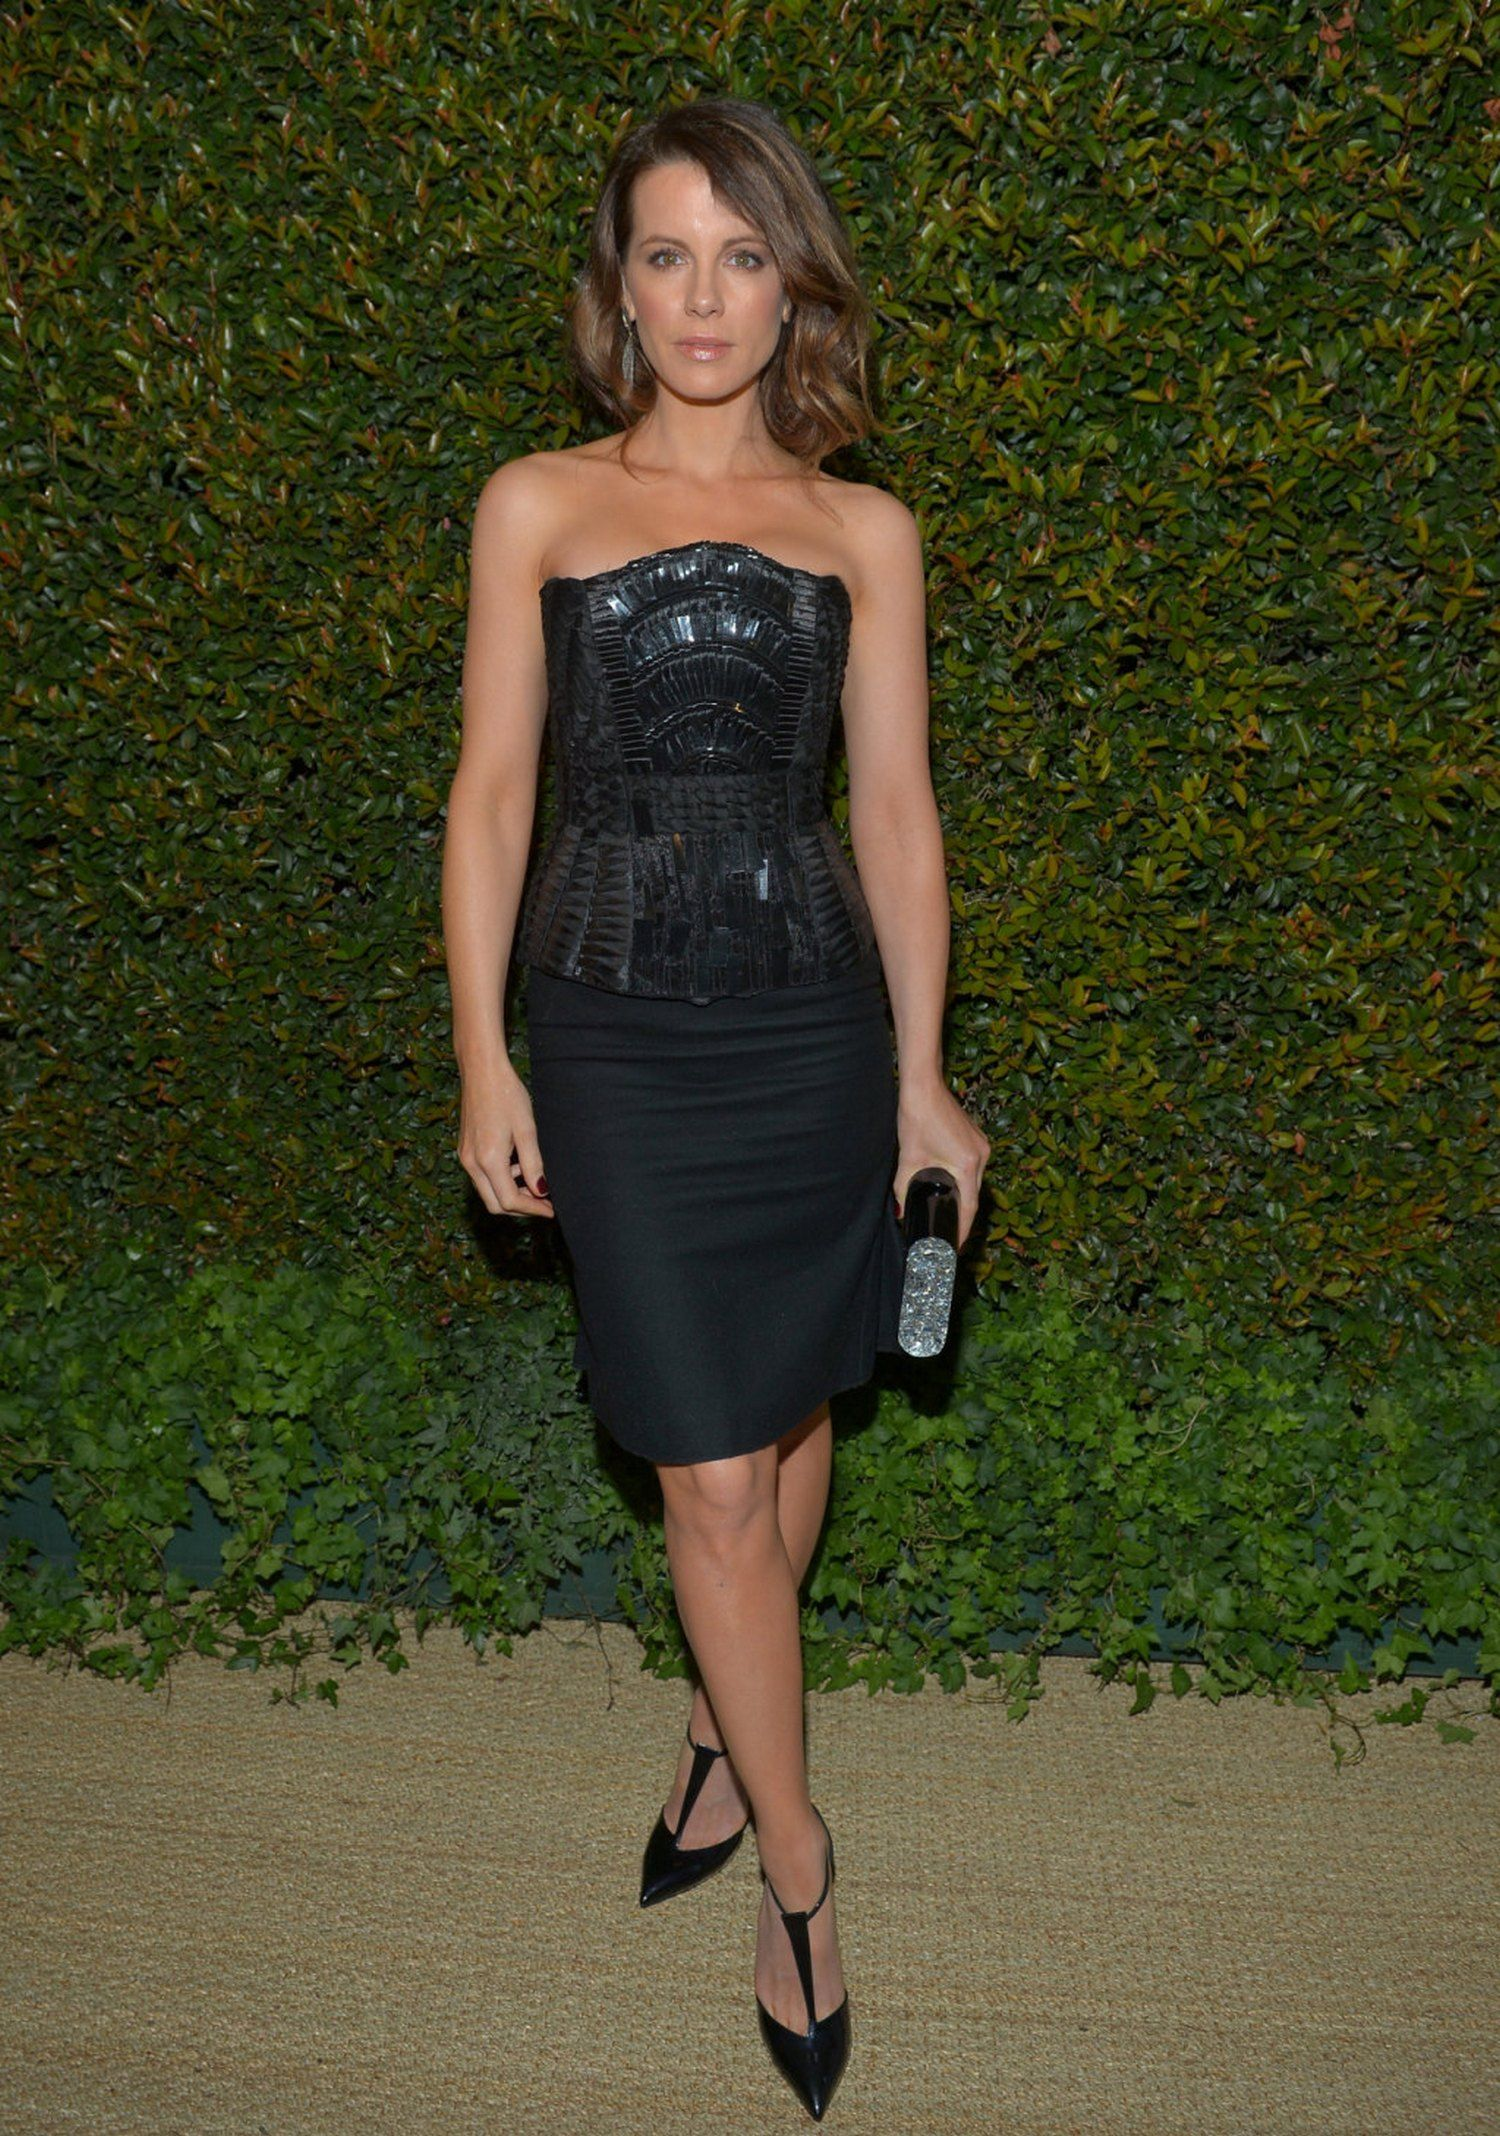 Kate Beckinsale Alberta Ferretti and Vogue Fashion Show  Dinner  058